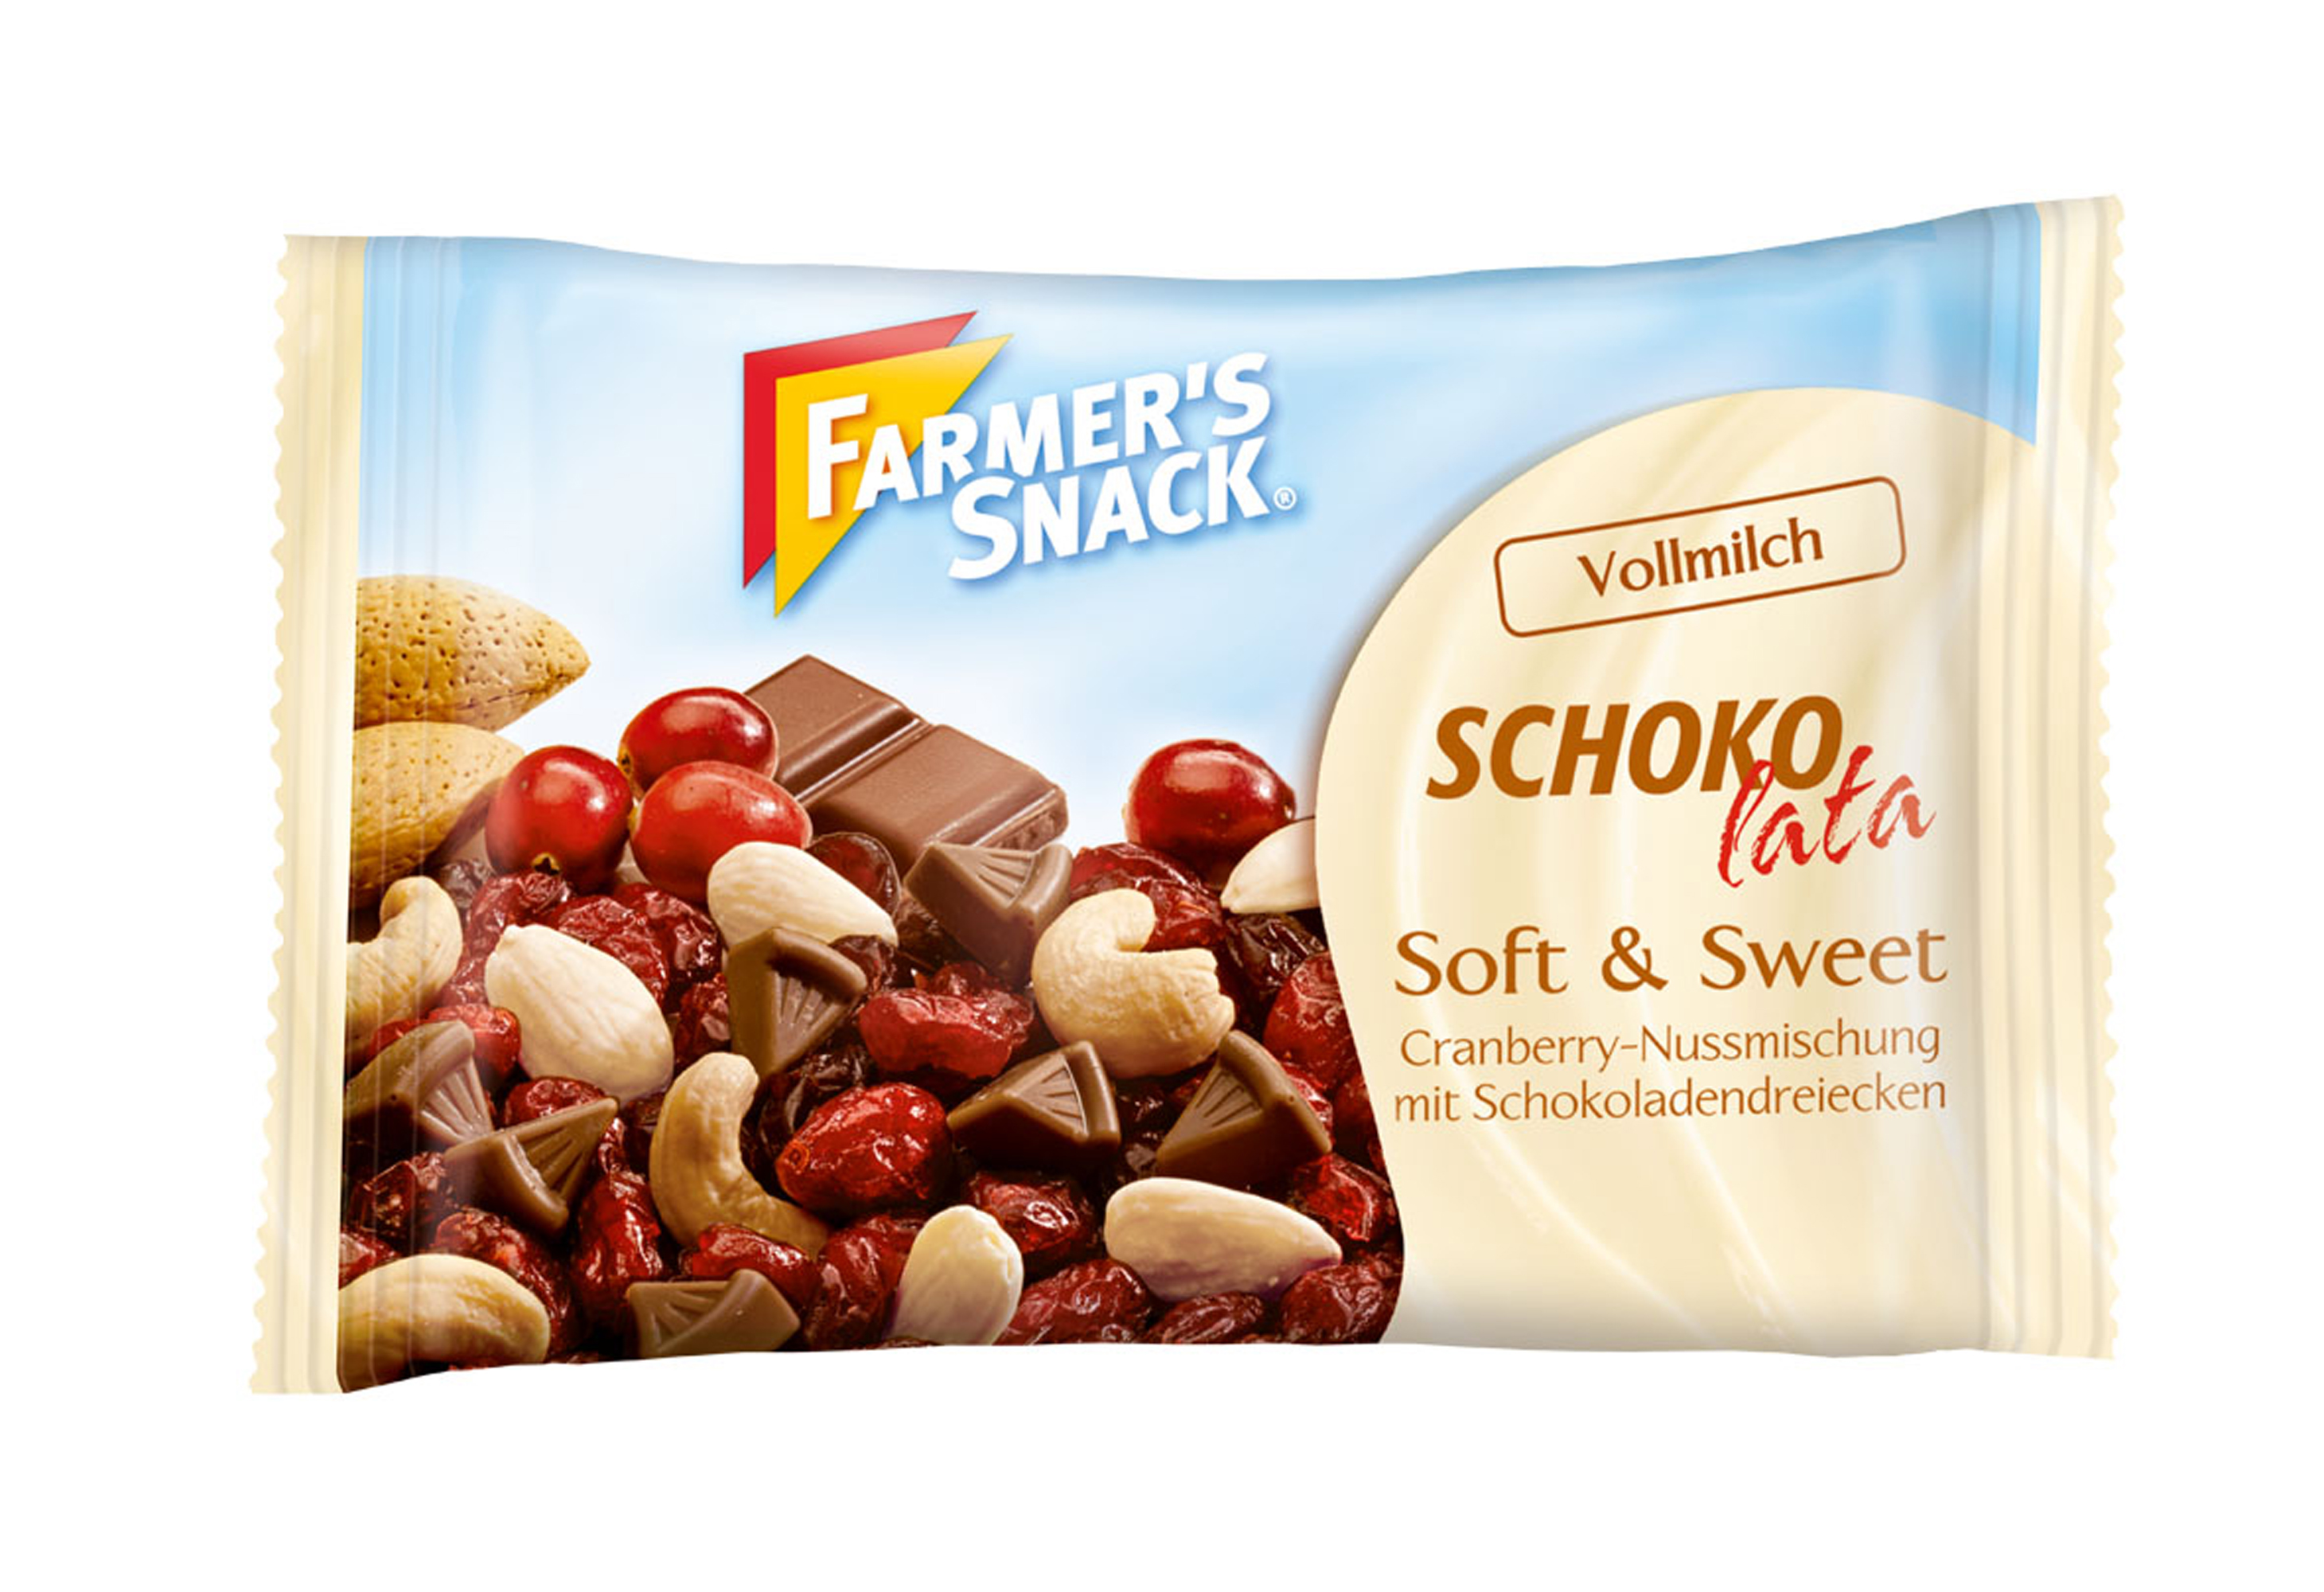 Schokolata Pocket<br>(FARMER'S SNACK)